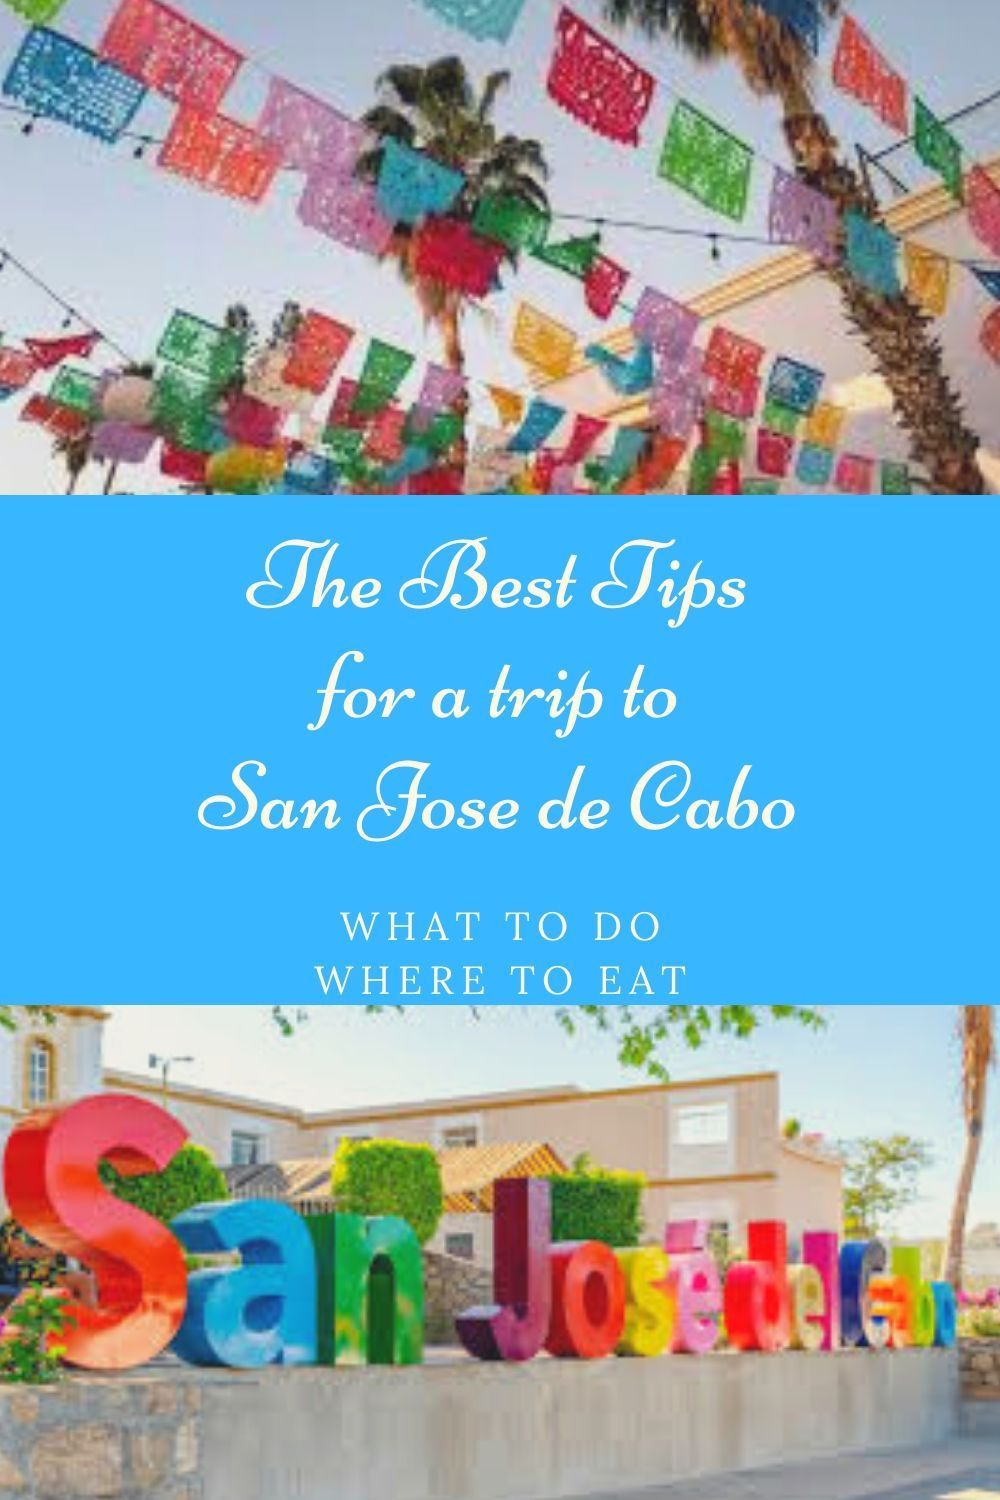 Sharing the best things to do, places to eat, and where to stay in this family friendly guide to San Jose del Cabo!  We loved our time there and want to give you the best tips to make sure you have the ultimate family vacation! #sanjosedelcabo #familyfriendlyguidetosanjosedelcabo #loscabos #cabosanlucas